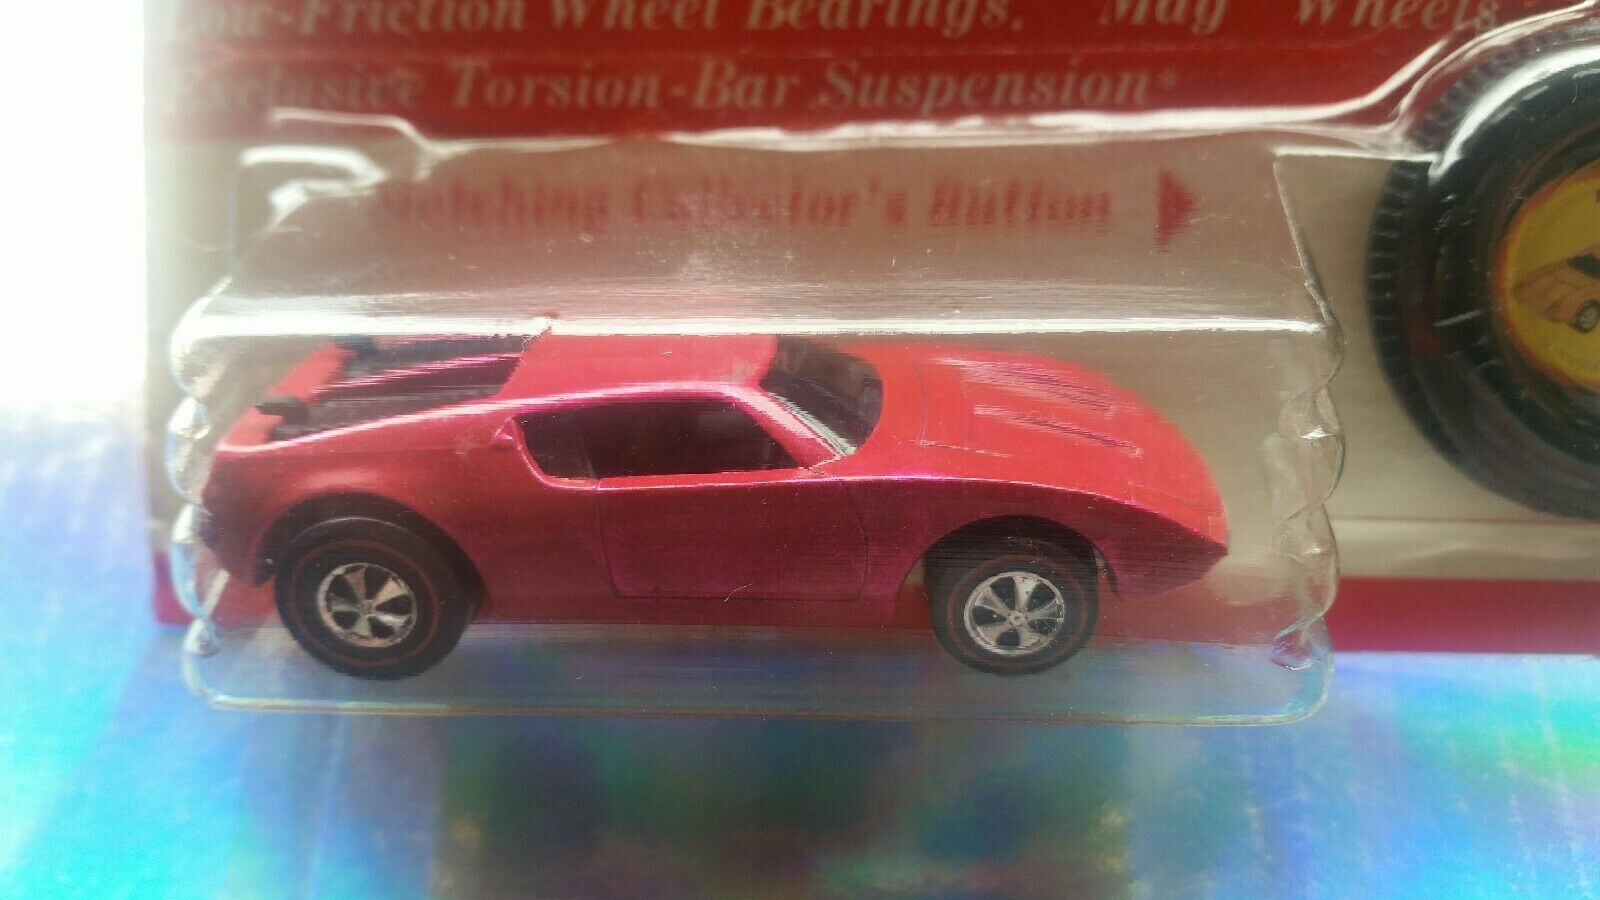 1971  AMX II  rougeline  sous blister  BP  HOT WHEELS  original  RARE  Collection  Très difficile à trouver